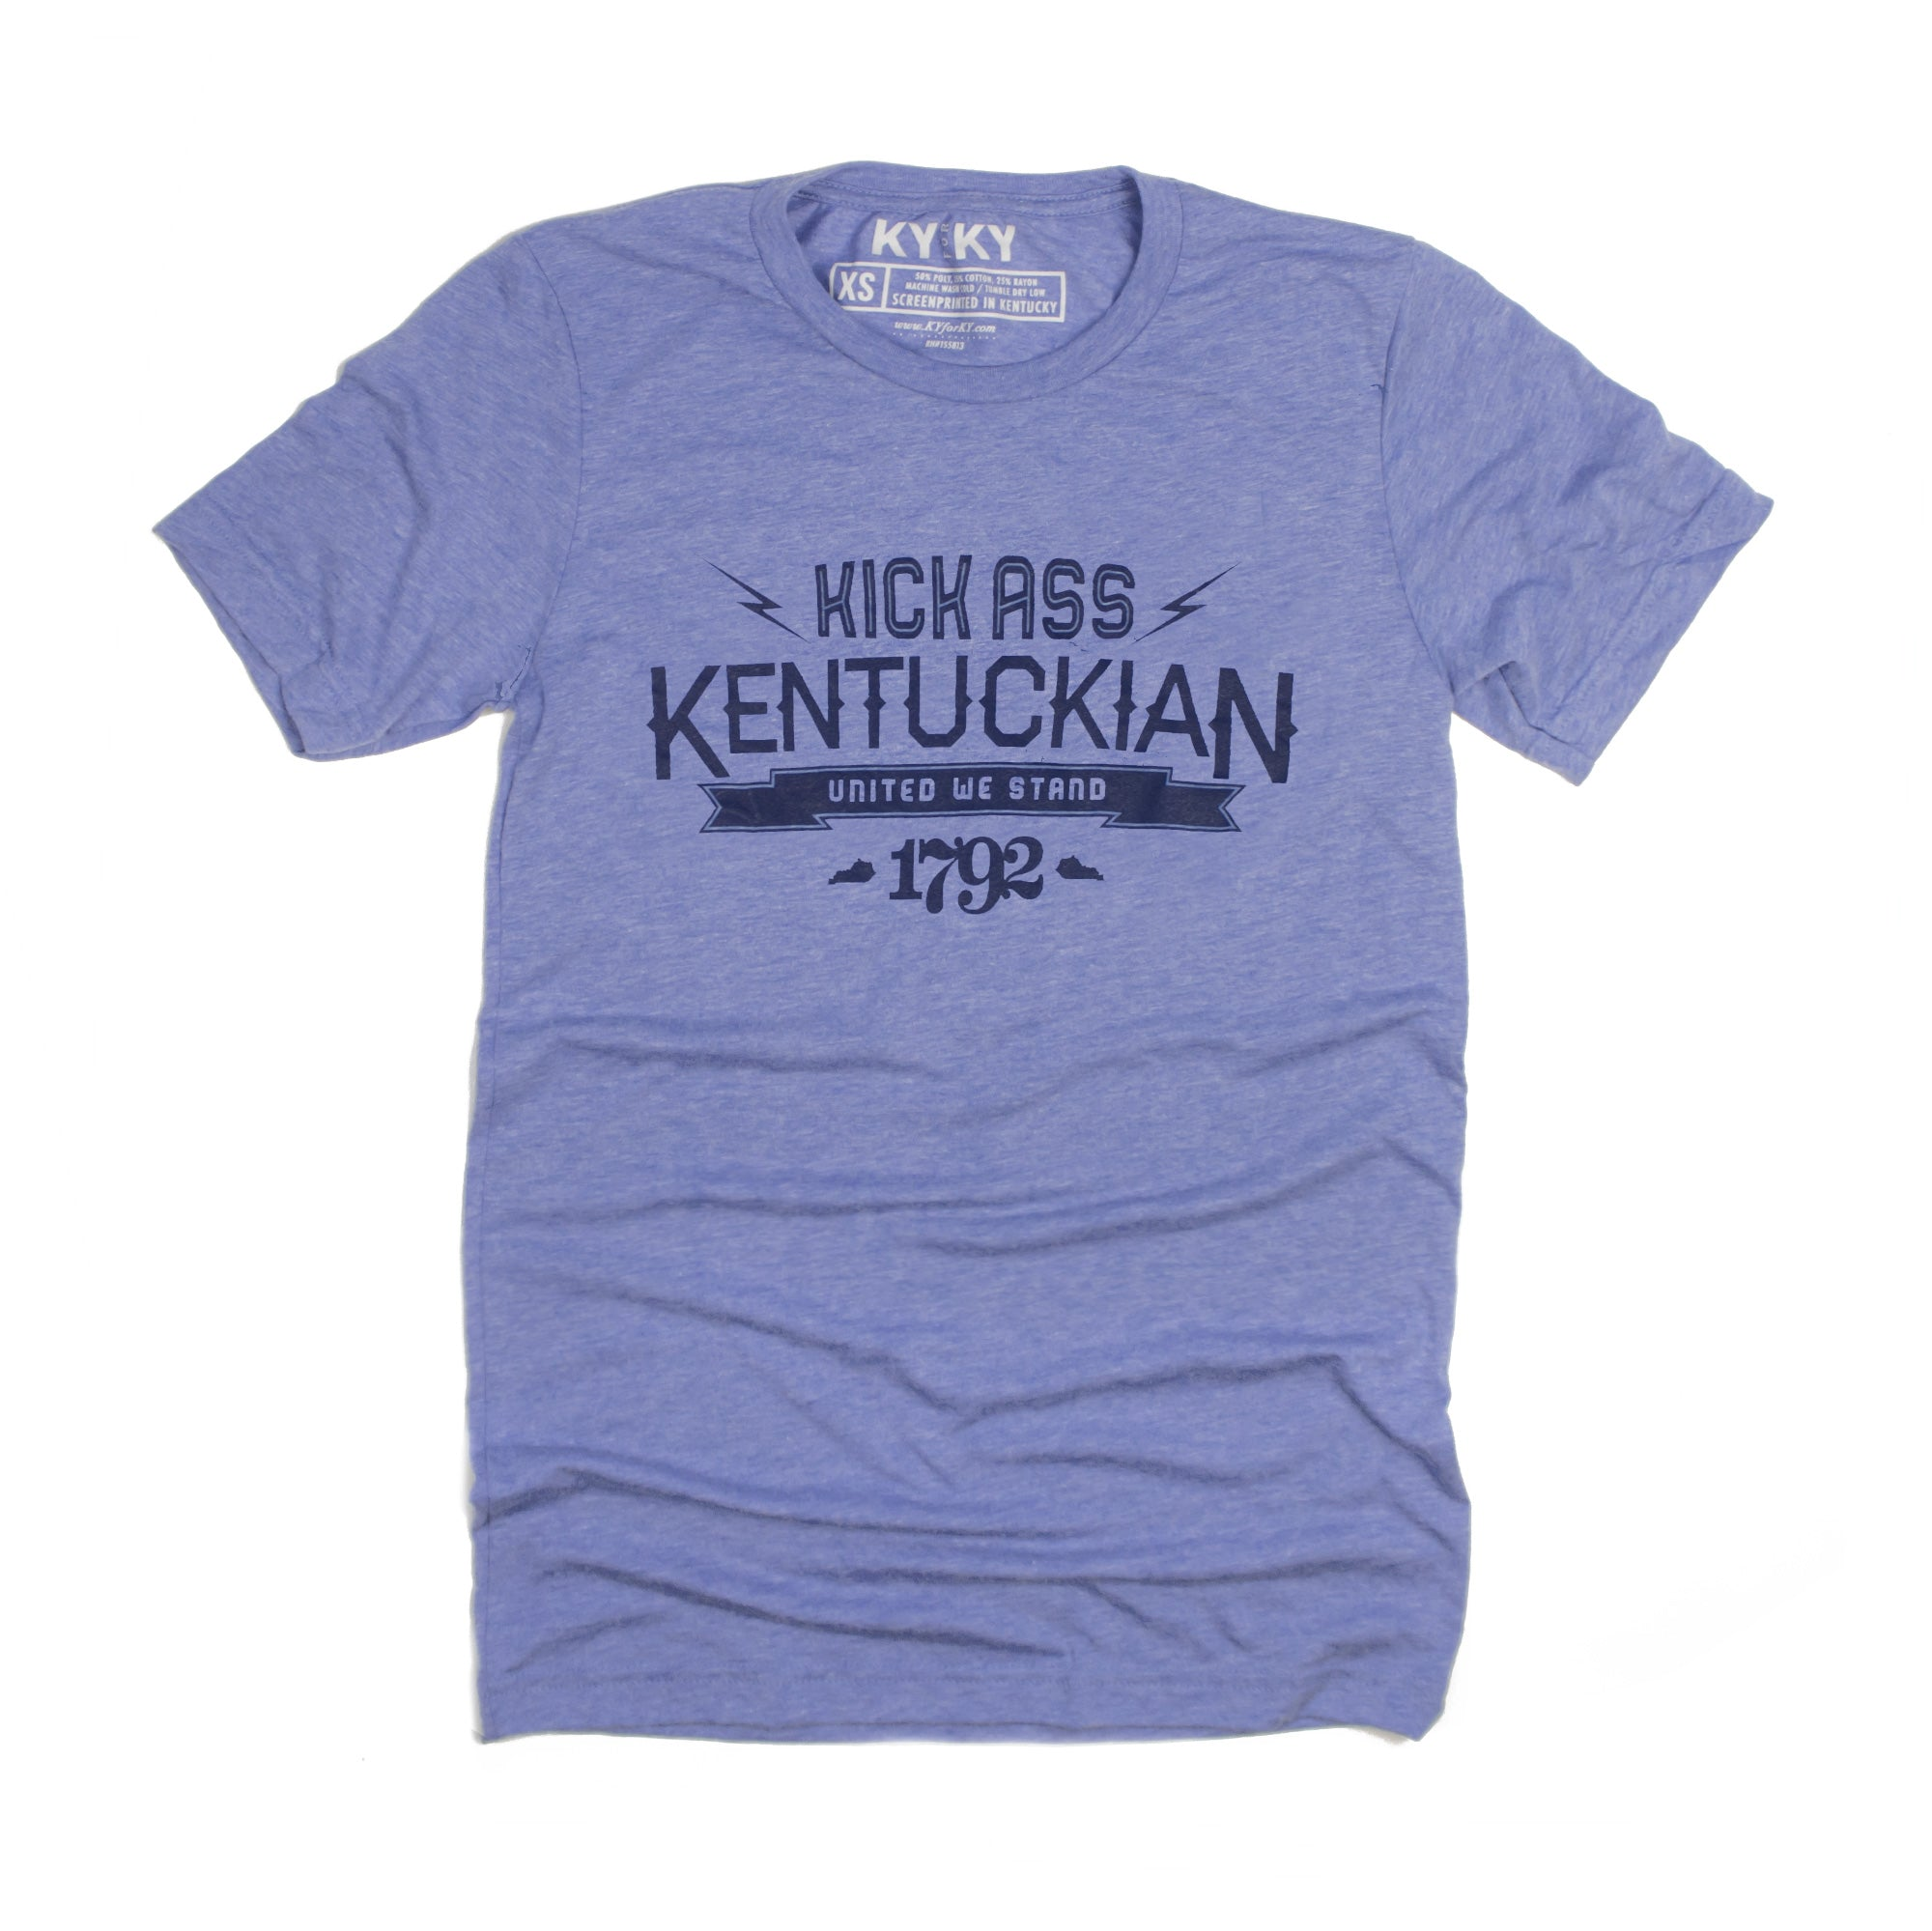 Kick Ass Kentuckian T-Shirt (Blue)-T-Shirt-KY for KY Store